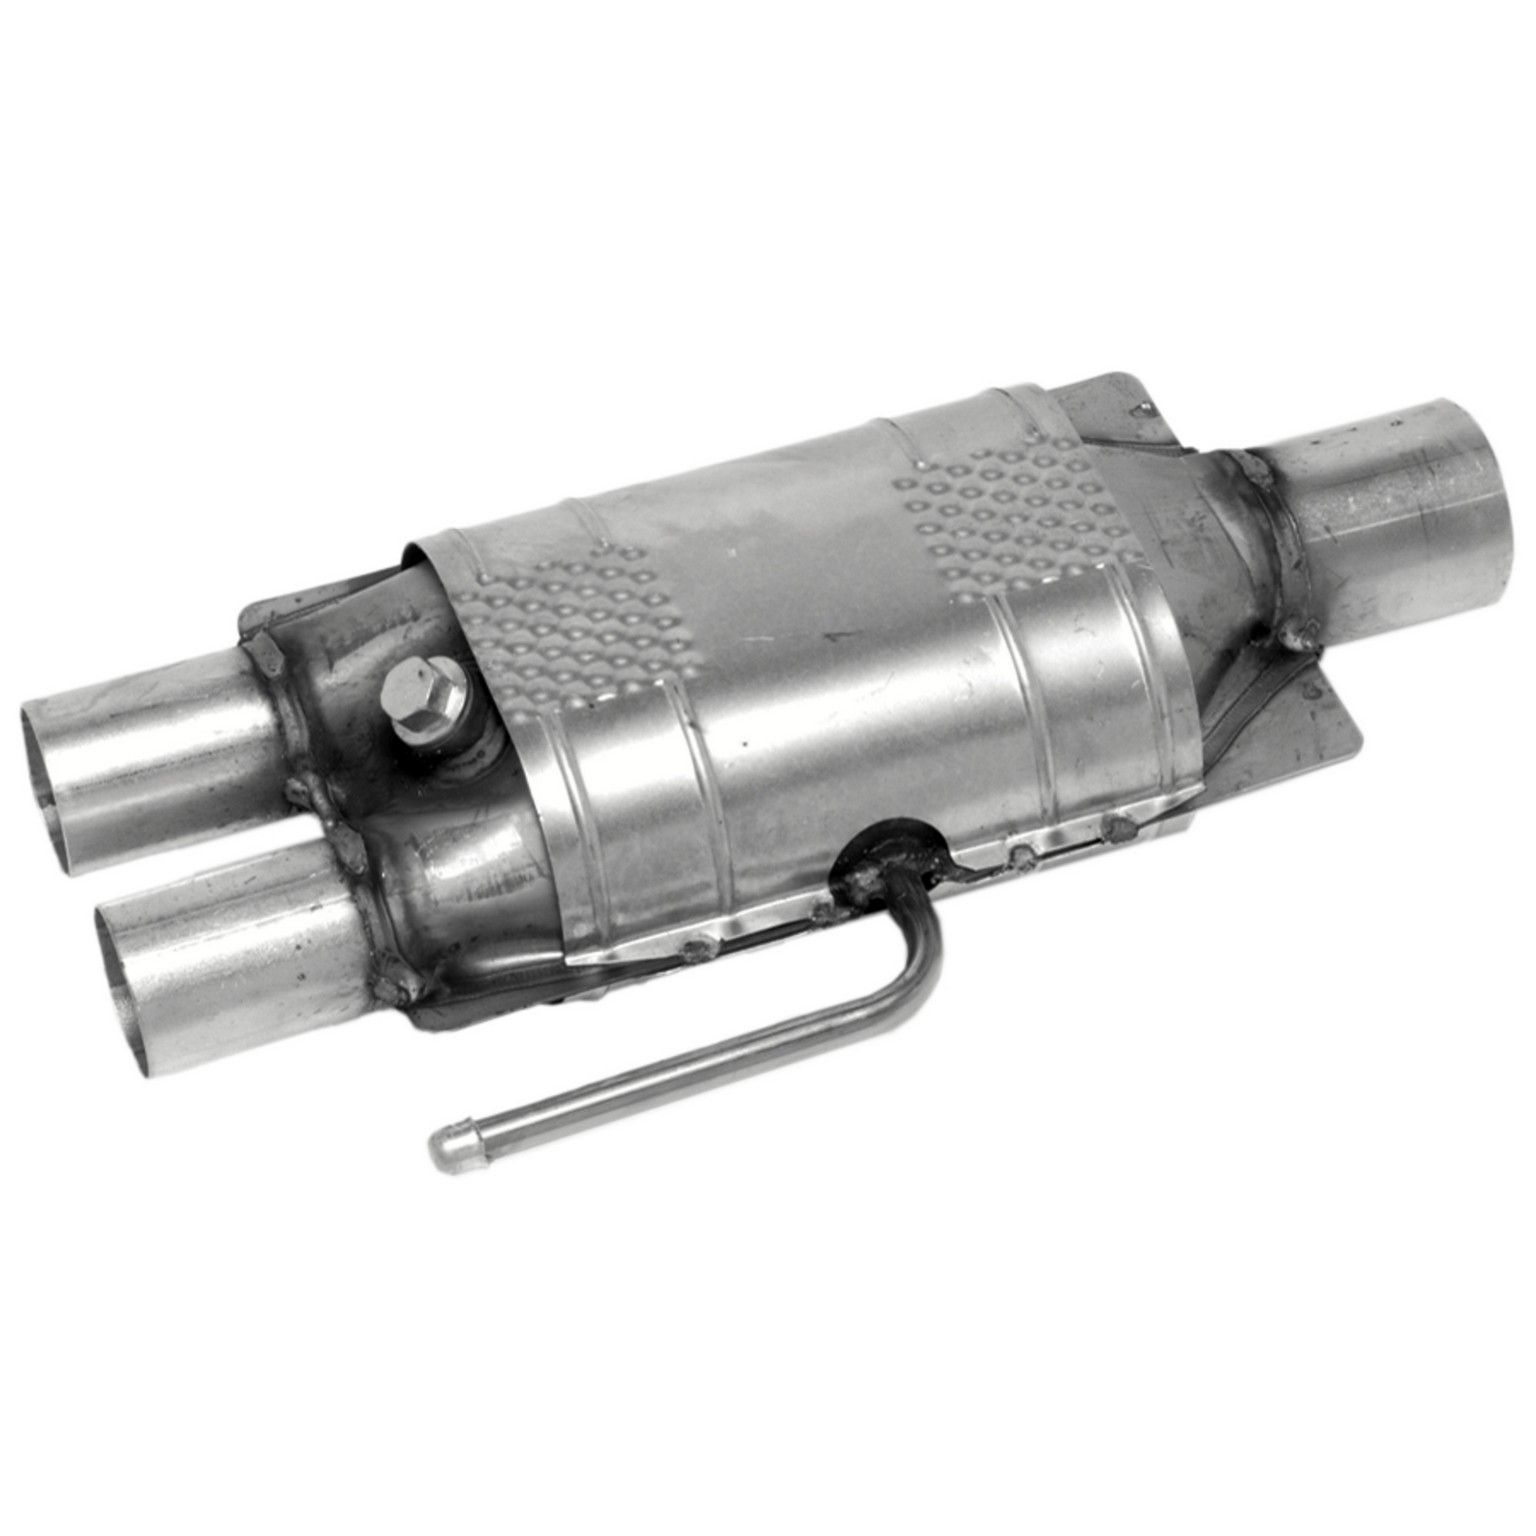 1997 Dodge Ram 1500 Catalytic Converter Na 6 Cyl 39l Walker 81512 Engine Family Vcr239h8g1ek Legal For Use In The States Of California And New: 97 Dodge Ram Catalytic Converter At Woreks.co